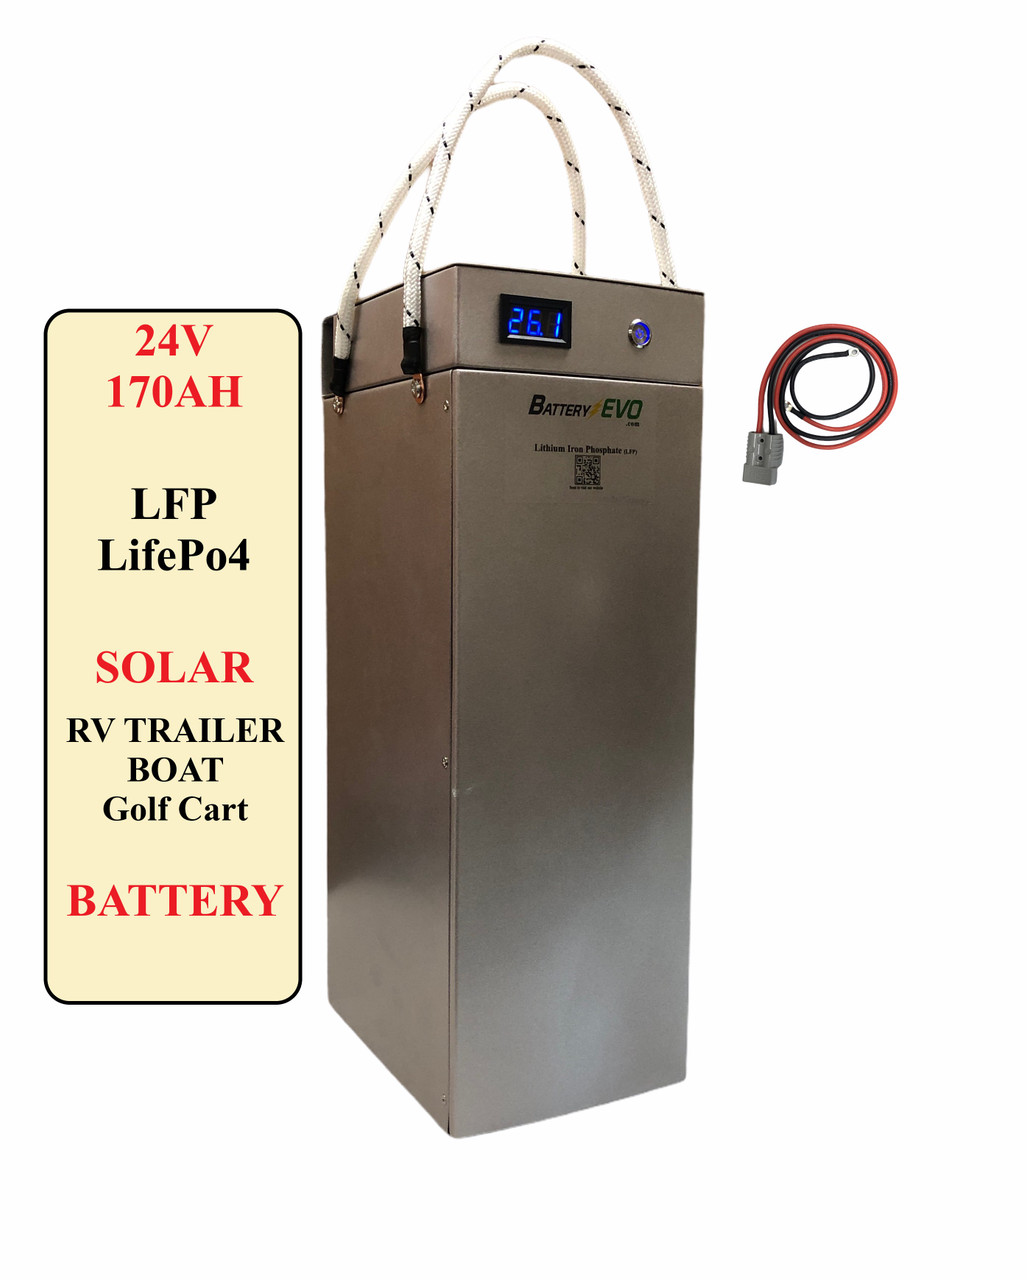 24V Battery Lithium 170Ah 4.5 kWh LiFePO4 LFP Solar Trailer Golf Cart Cabin Scooter Boat